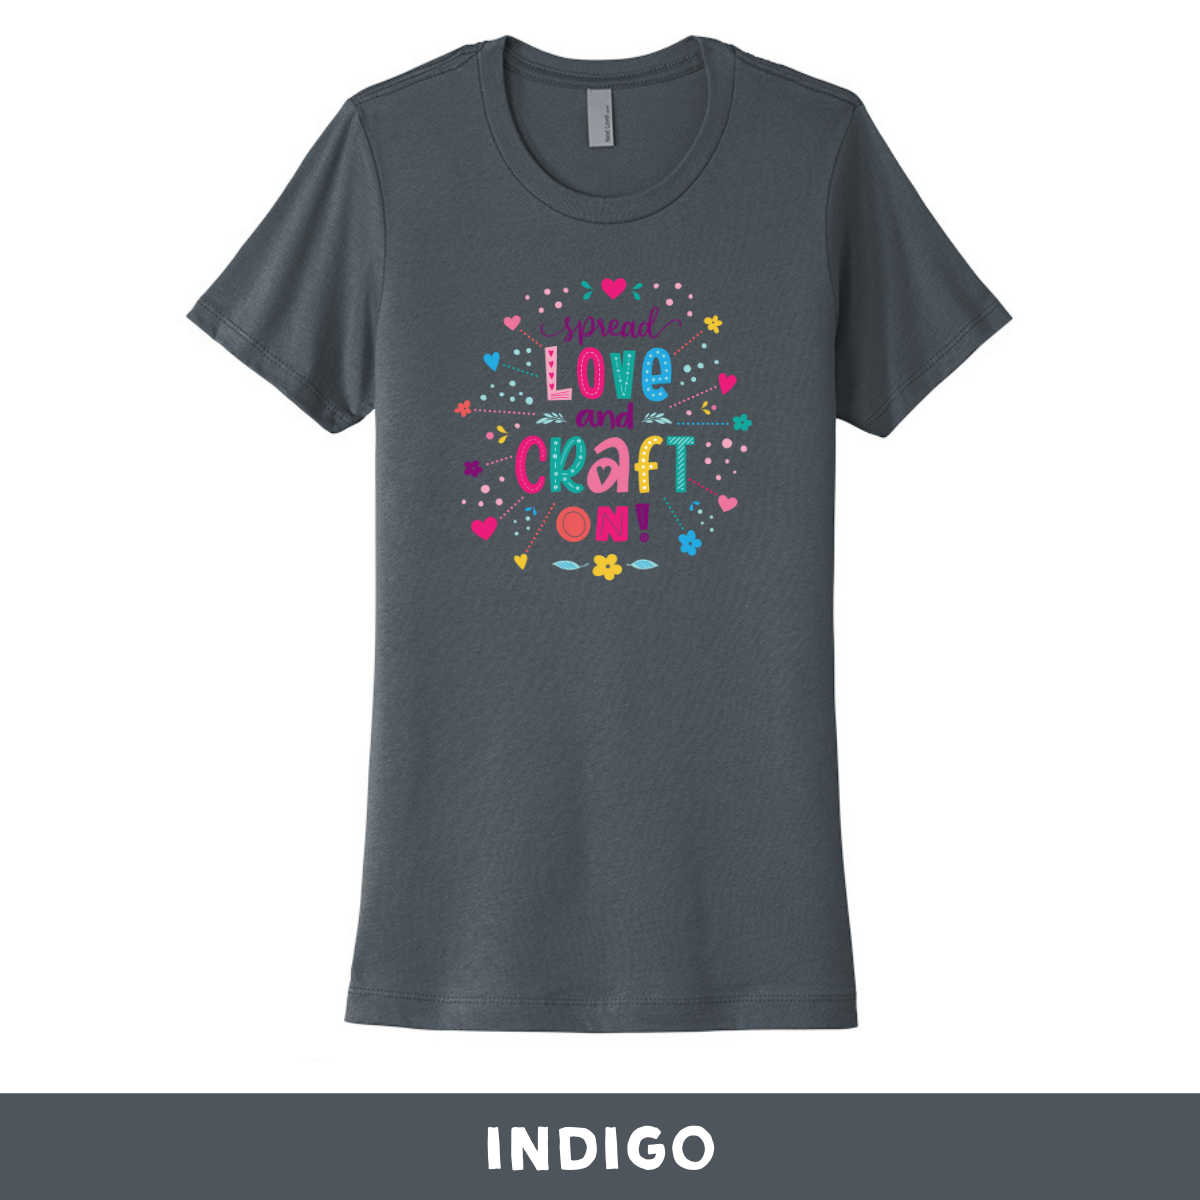 Indigo - Crew Neck Boyfriend Tee - Spread Love and Craft On